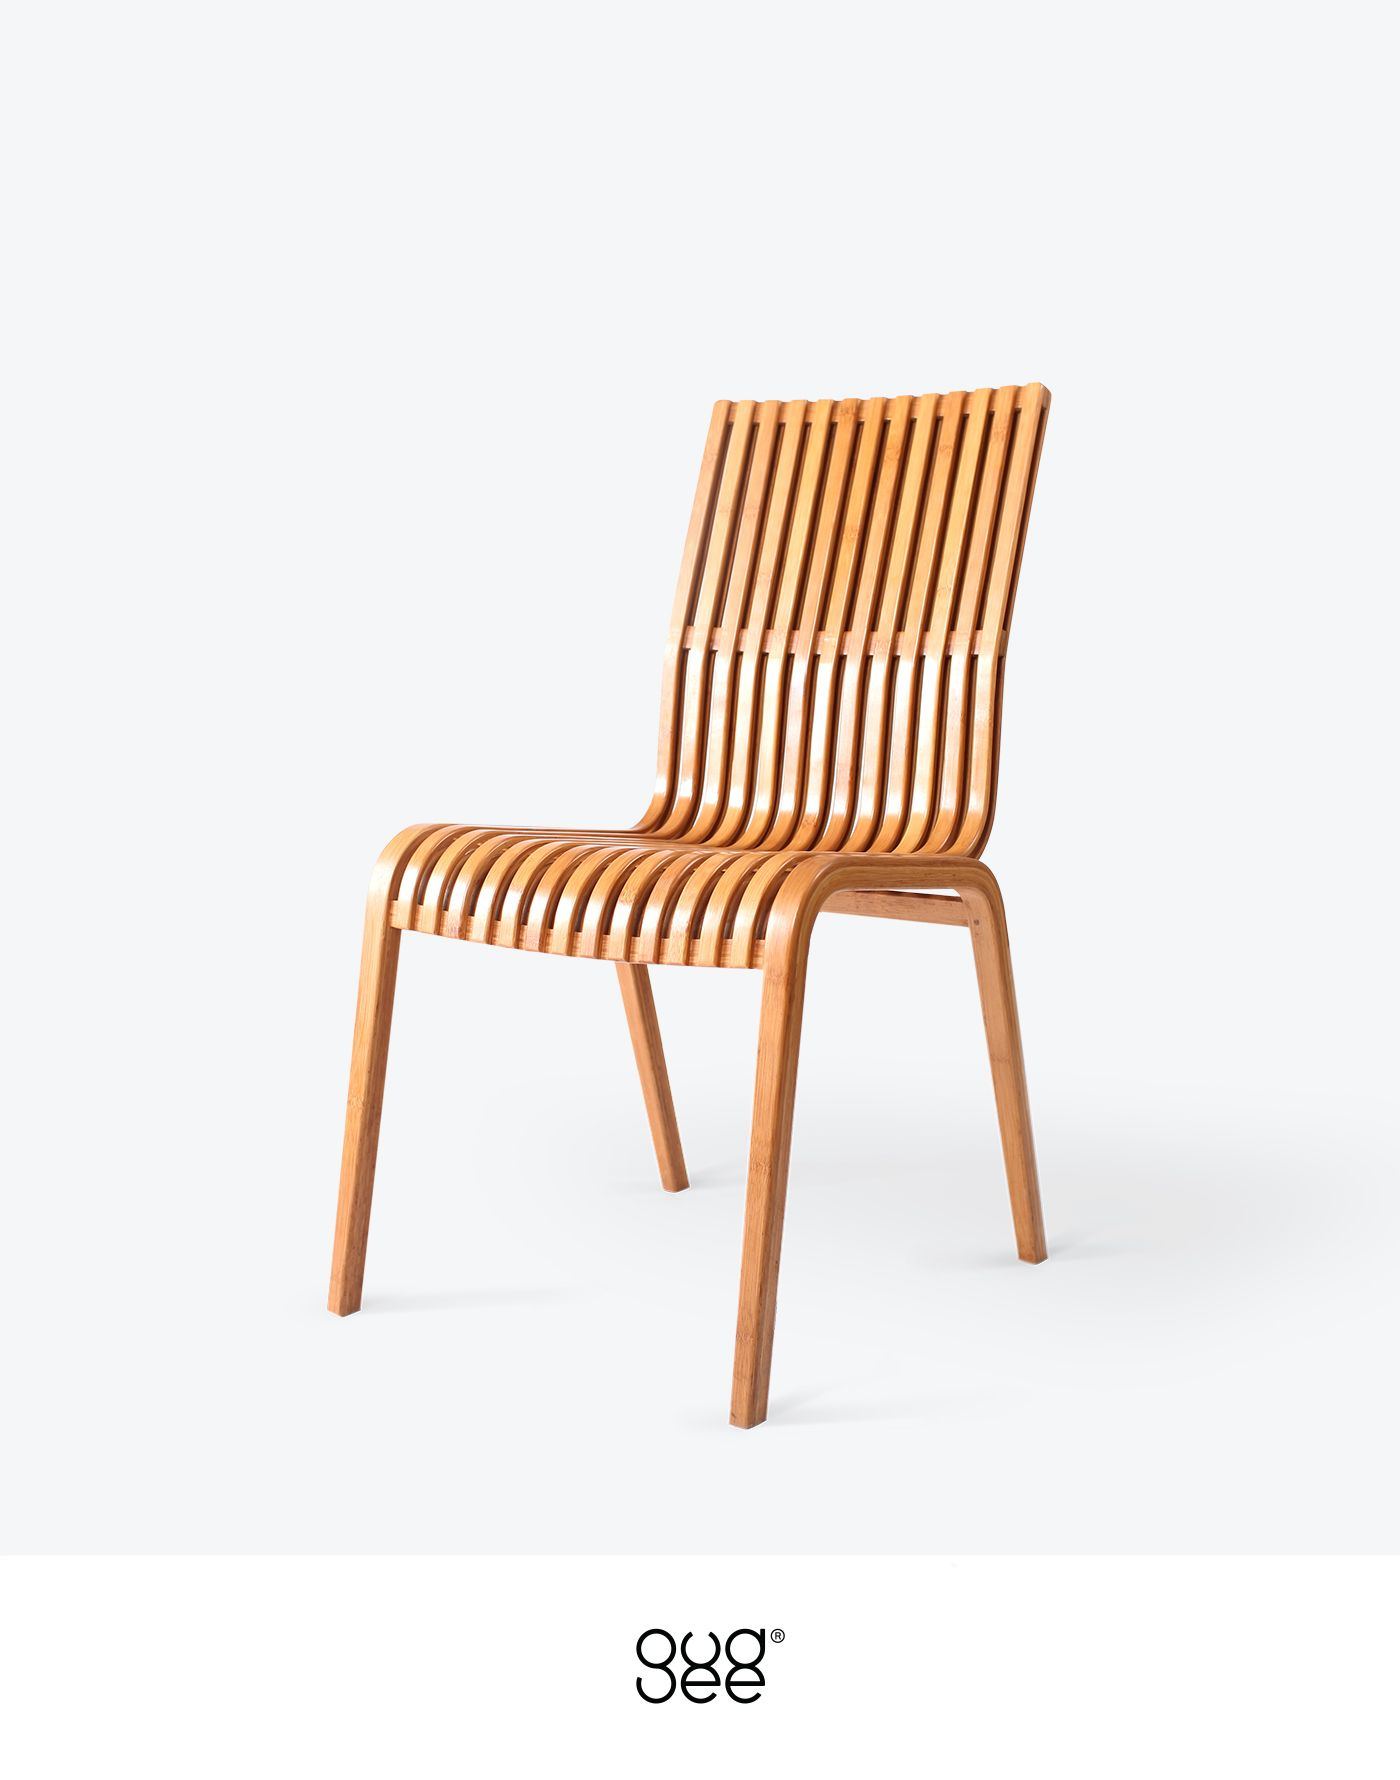 raffles bamboo chair gudee raffles keeps the simple and modern rh pinterest com